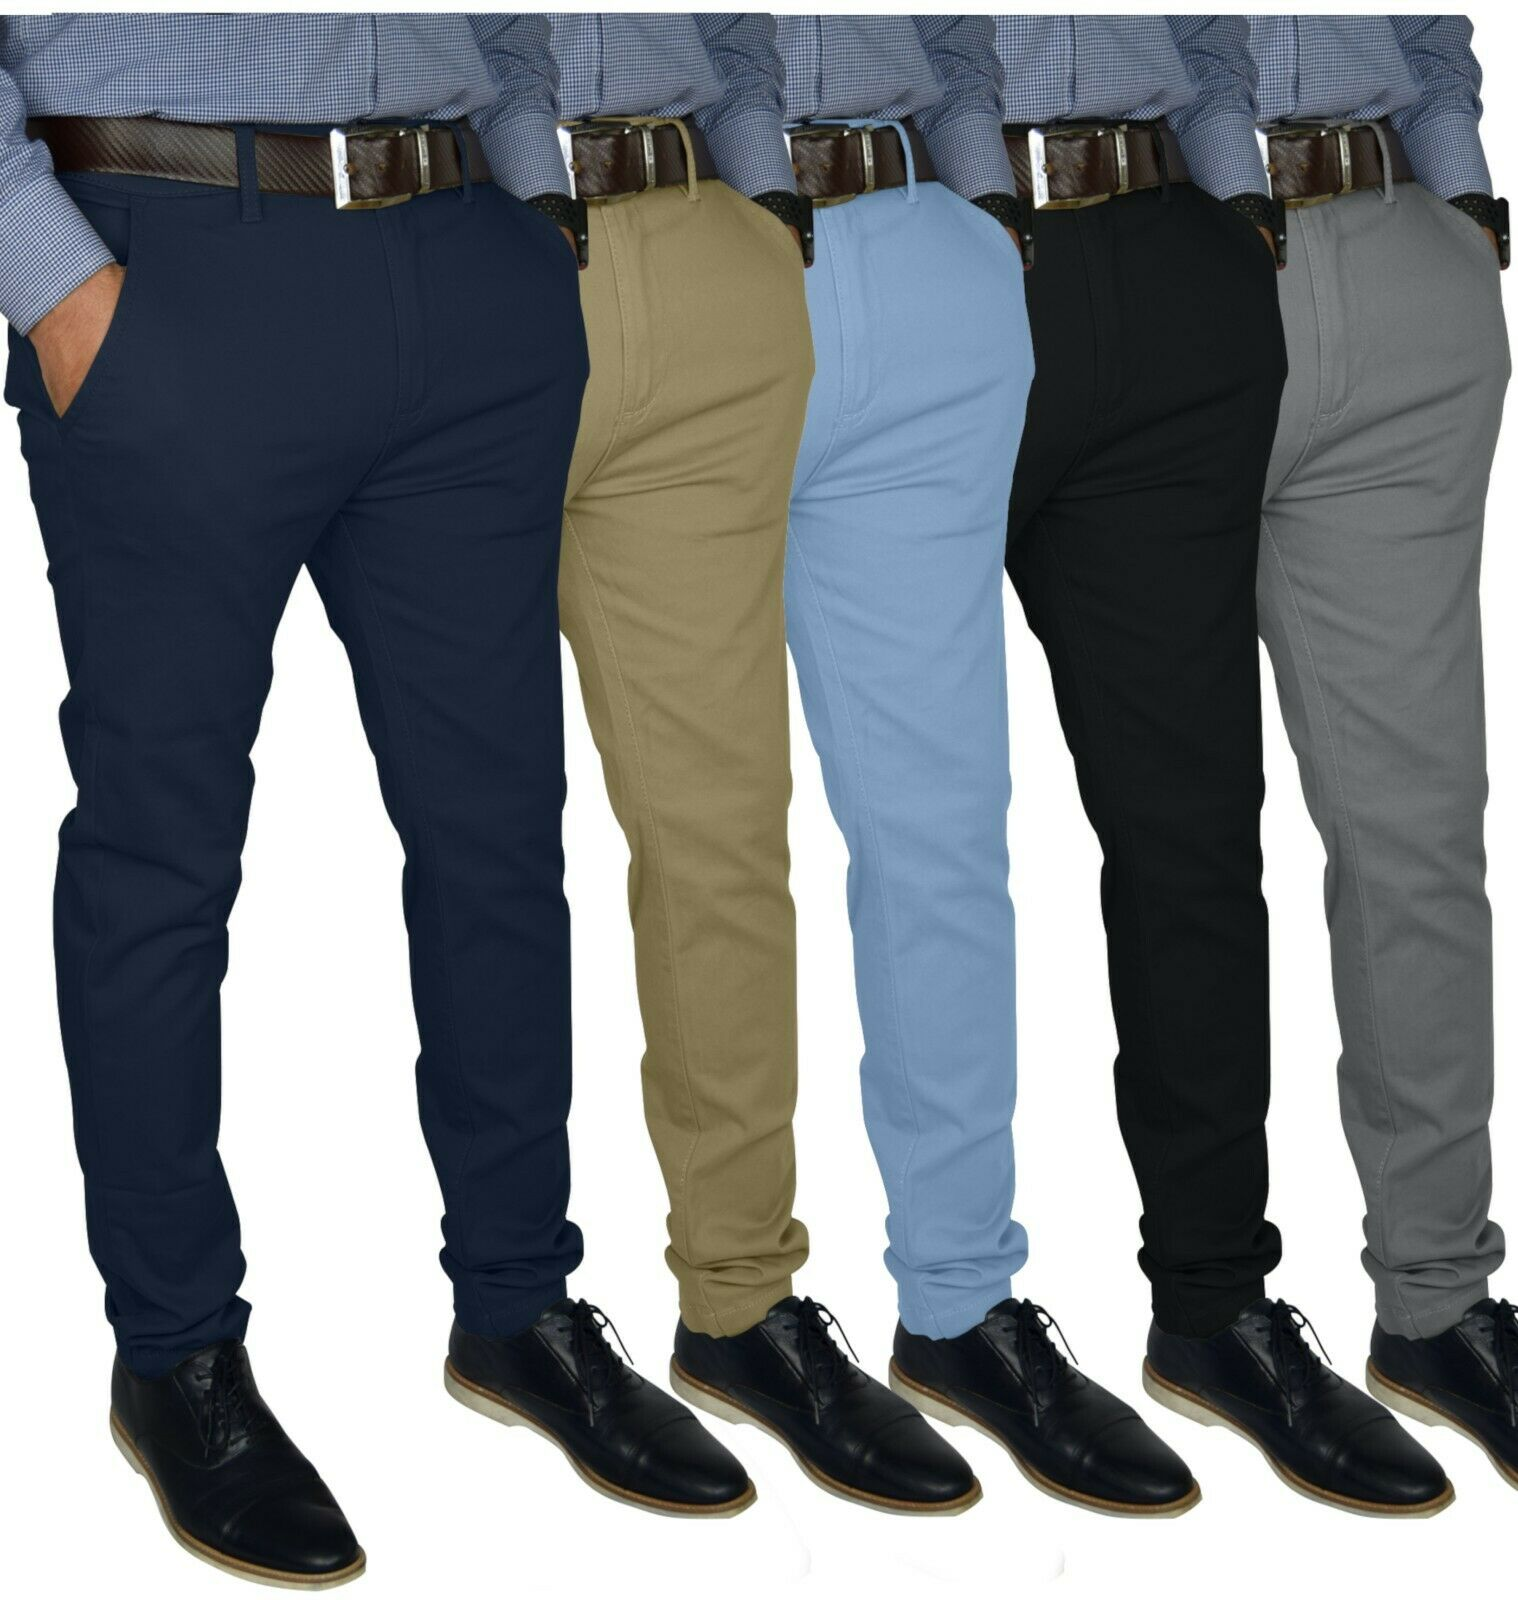 Mens Slim FIT Stretch Chino Trousers Casual Flat Front Flex Full Pants Clothing, Shoes & Accessories